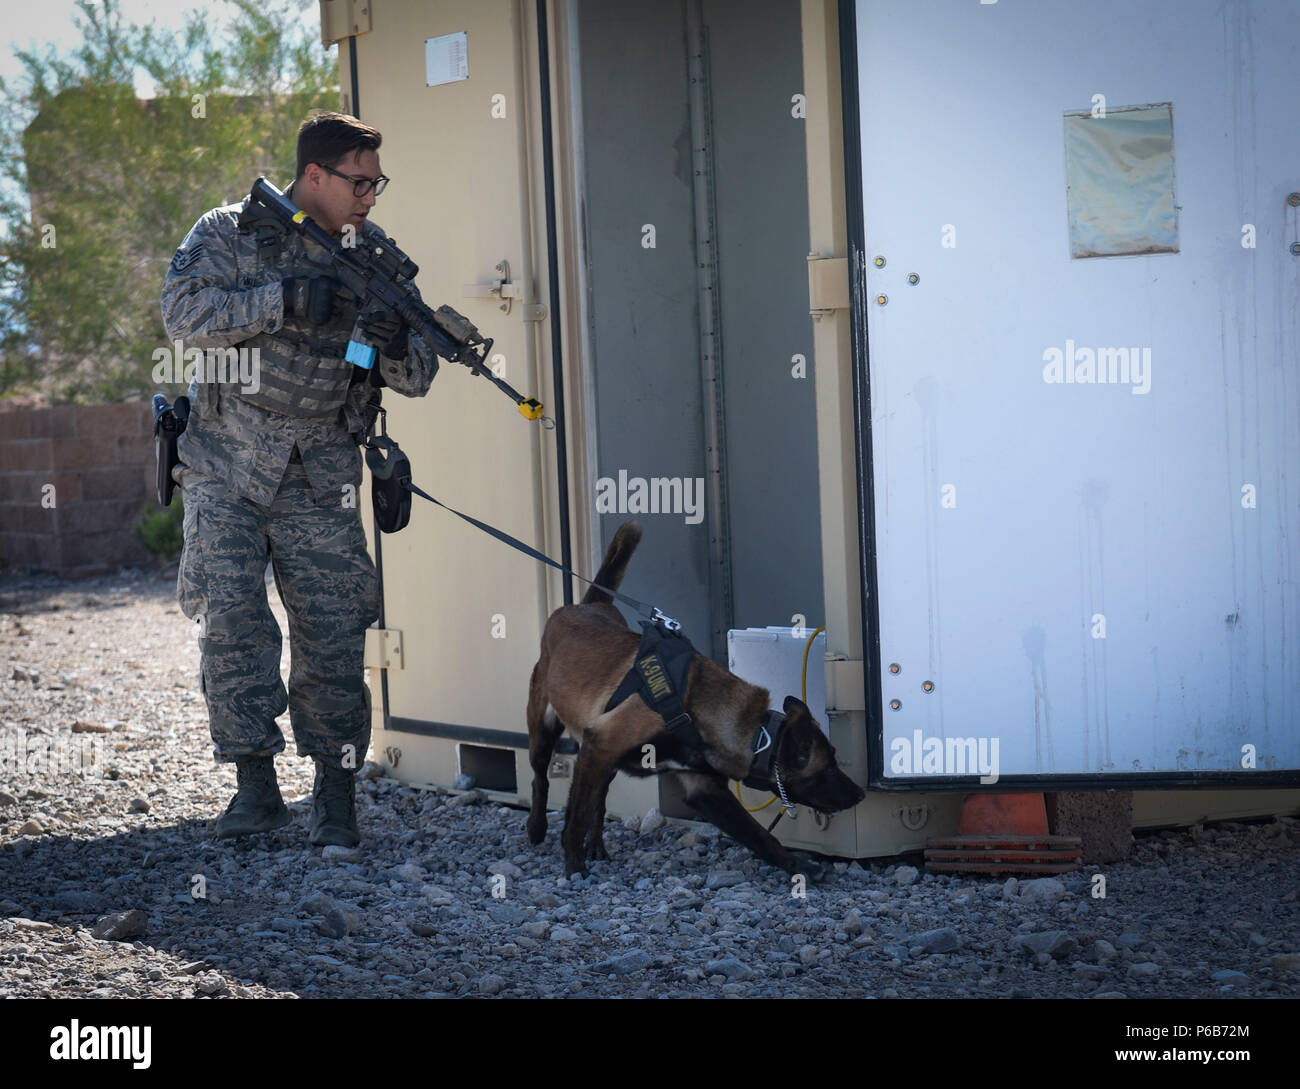 Staff Sgt. Ryne Wilson, a 99th Security Forces Squadron military working dog handler, and his MWD, Seneca, inspect the outside of a building during a training exercise at Nellis Air Force Base, Nev., April 26, 2018. The exercise trained the handlers and their dogs how to detect and seize various explosives and narcotics. (U.S. Air Force photo by Airman Bailee A. Darbasie) Stock Photo